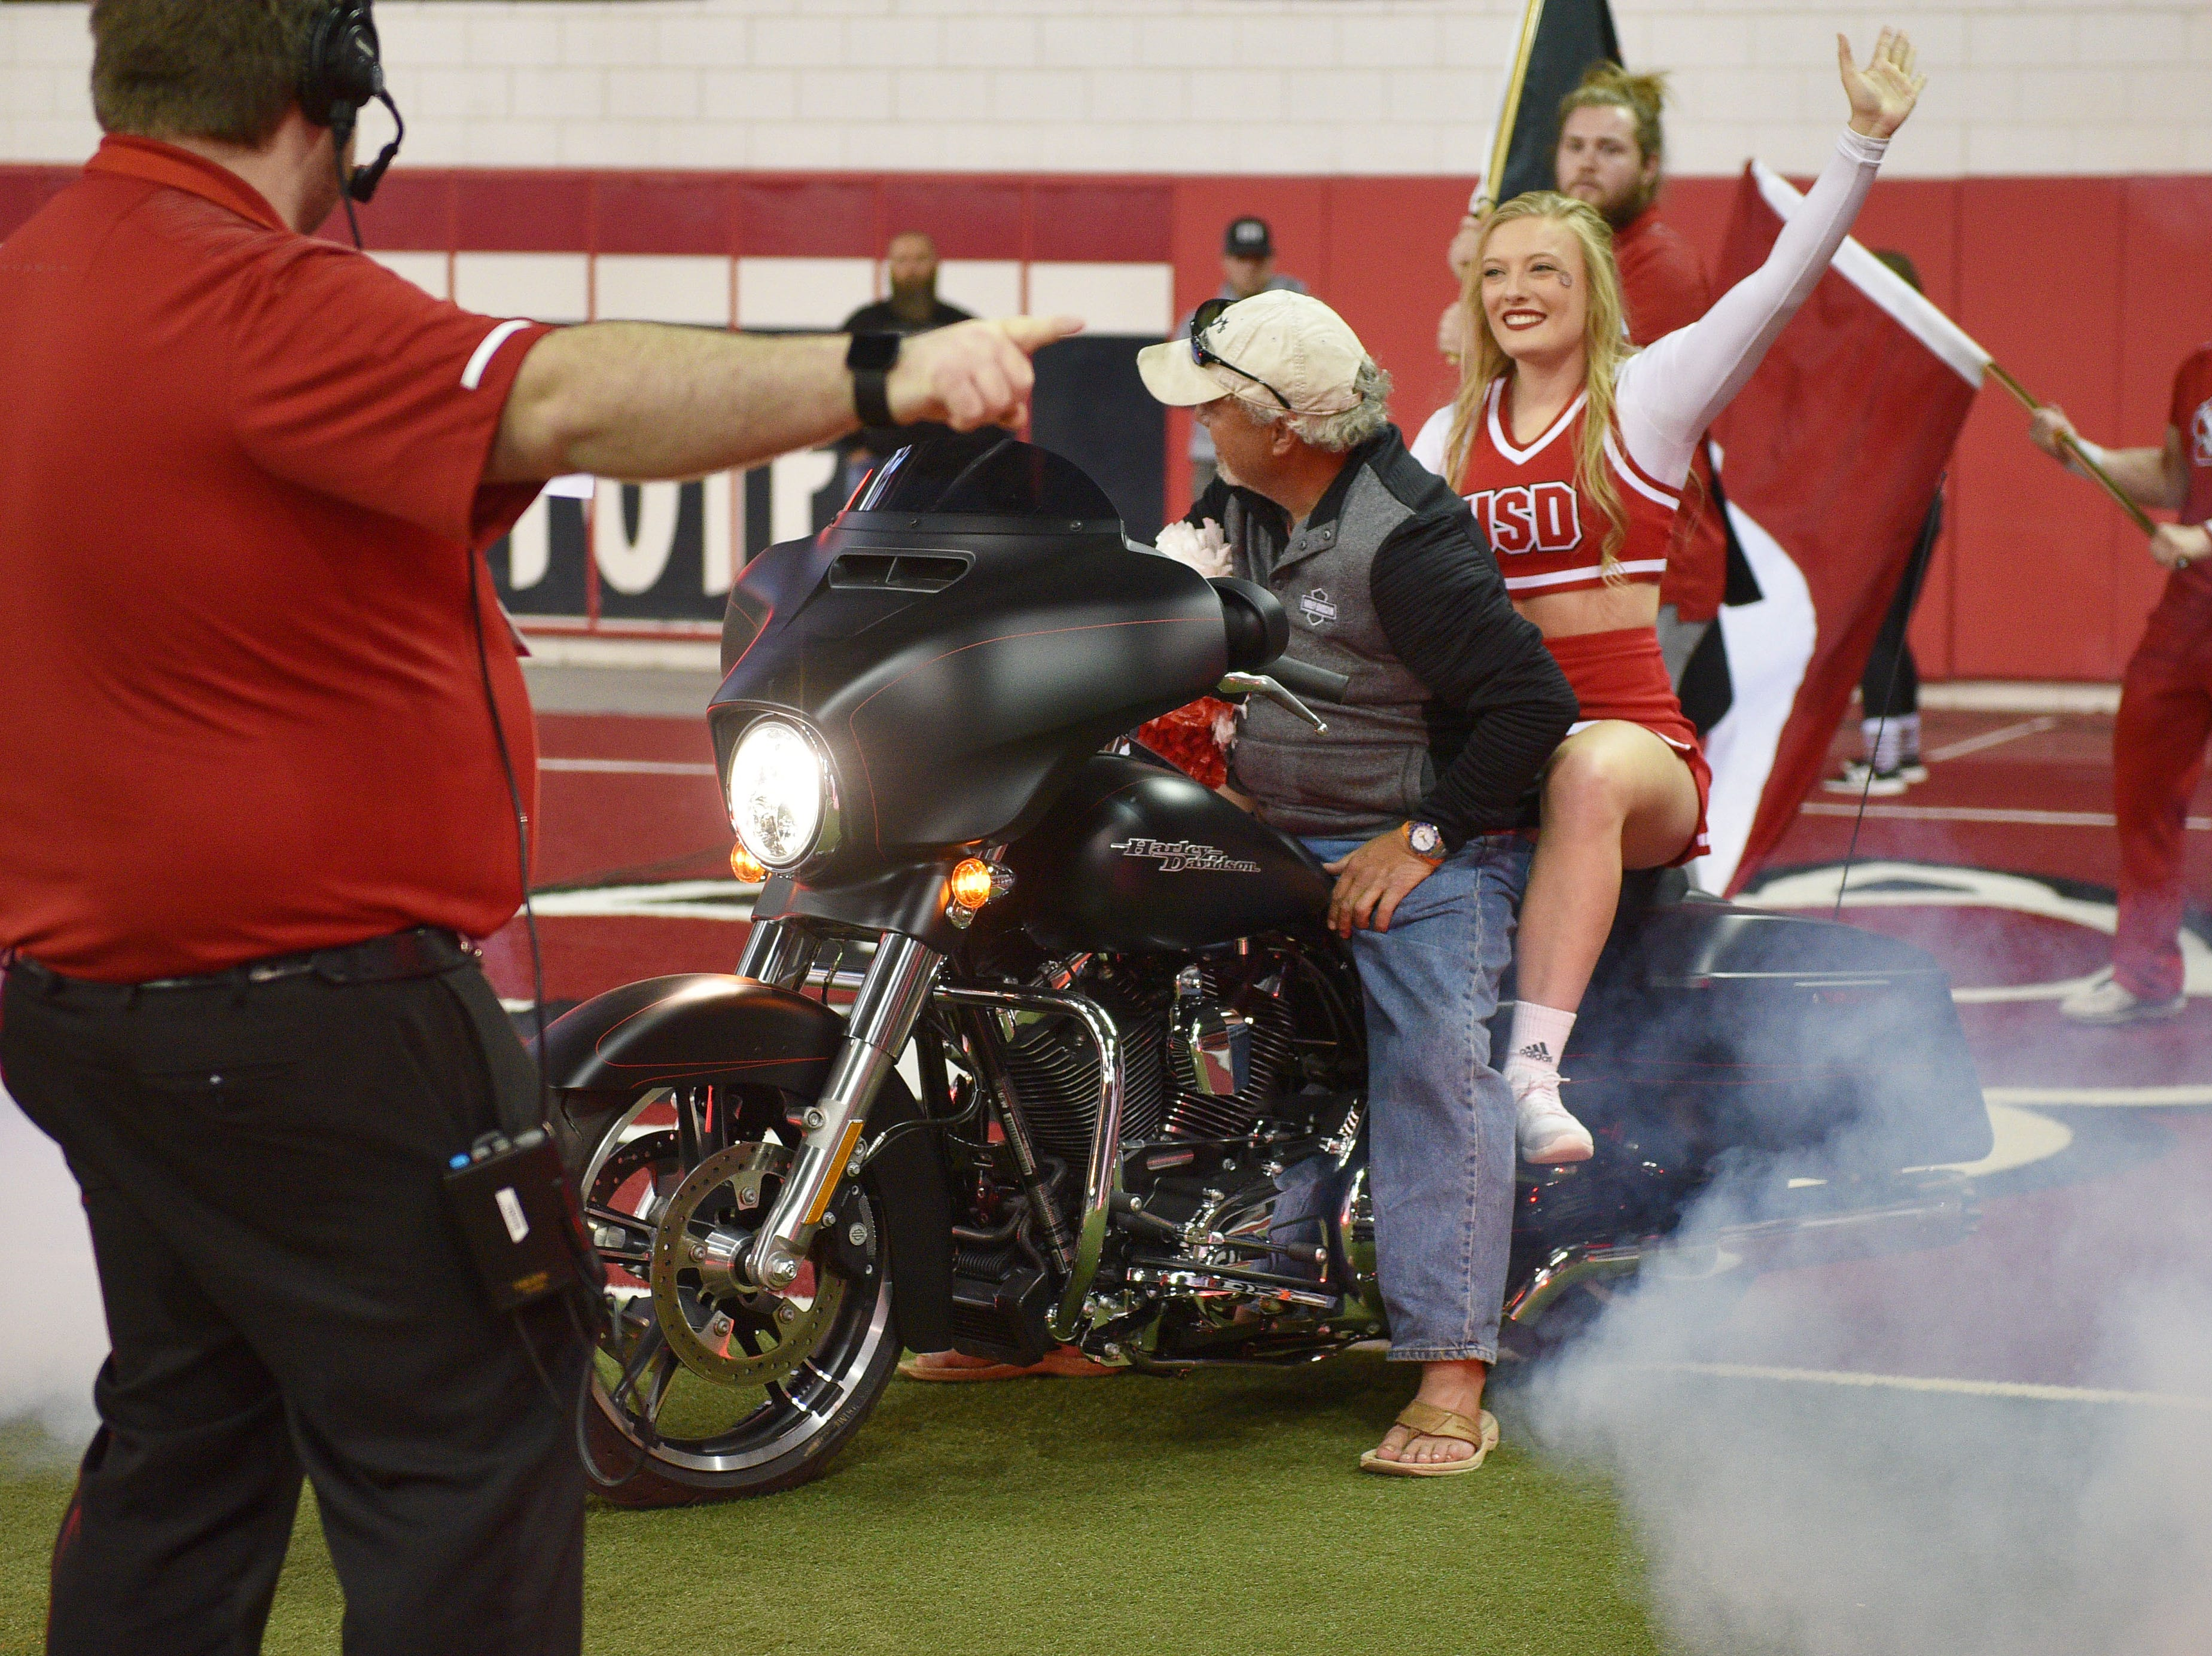 USD prepares to take the field for the game against Western Illinois Saturday, Nov. 10, at the DakotaDome in Vermillion.